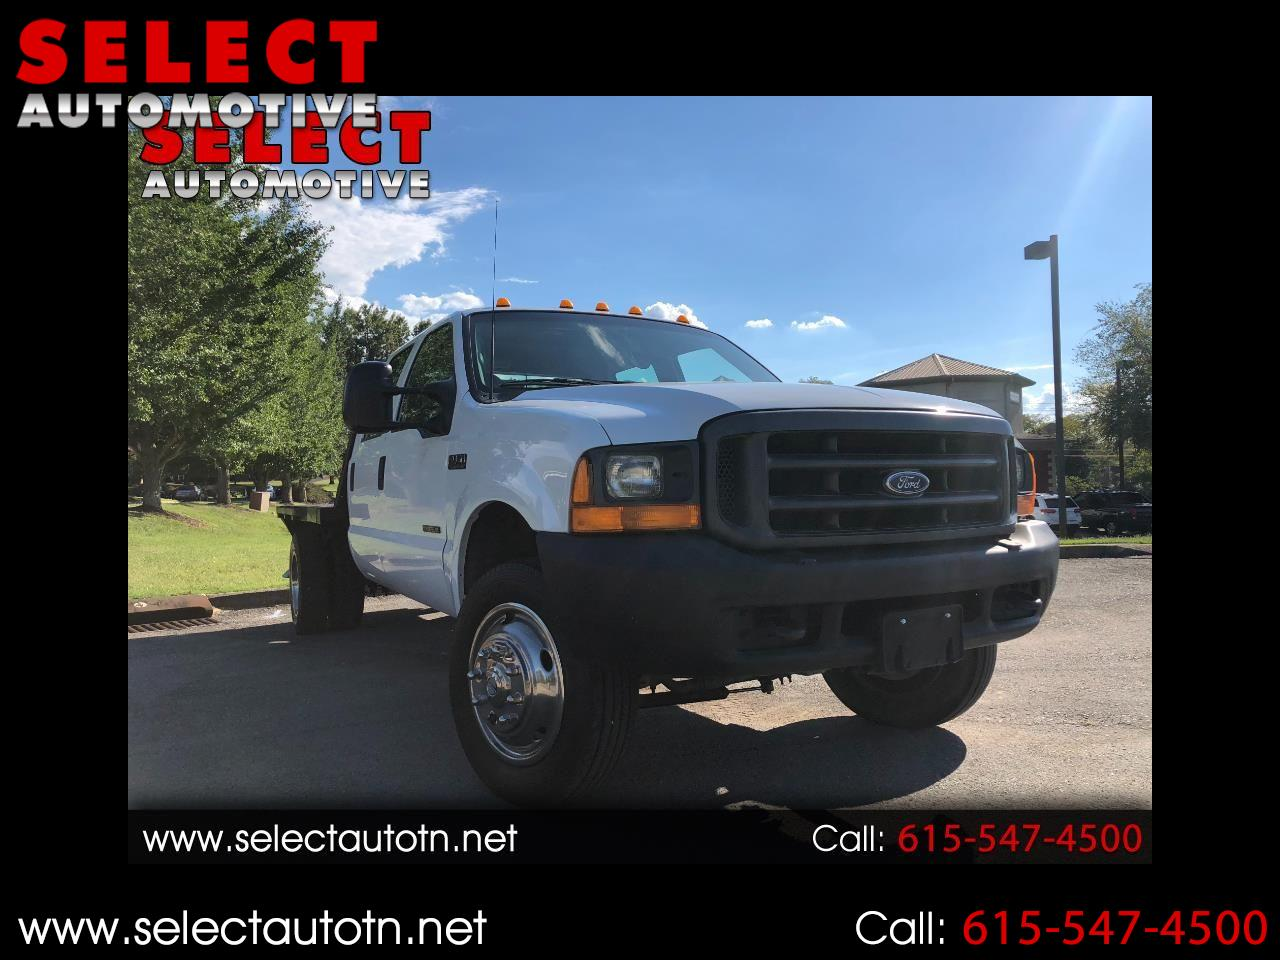 2001 Ford F-450 SD Crew Cab 2WD DRW